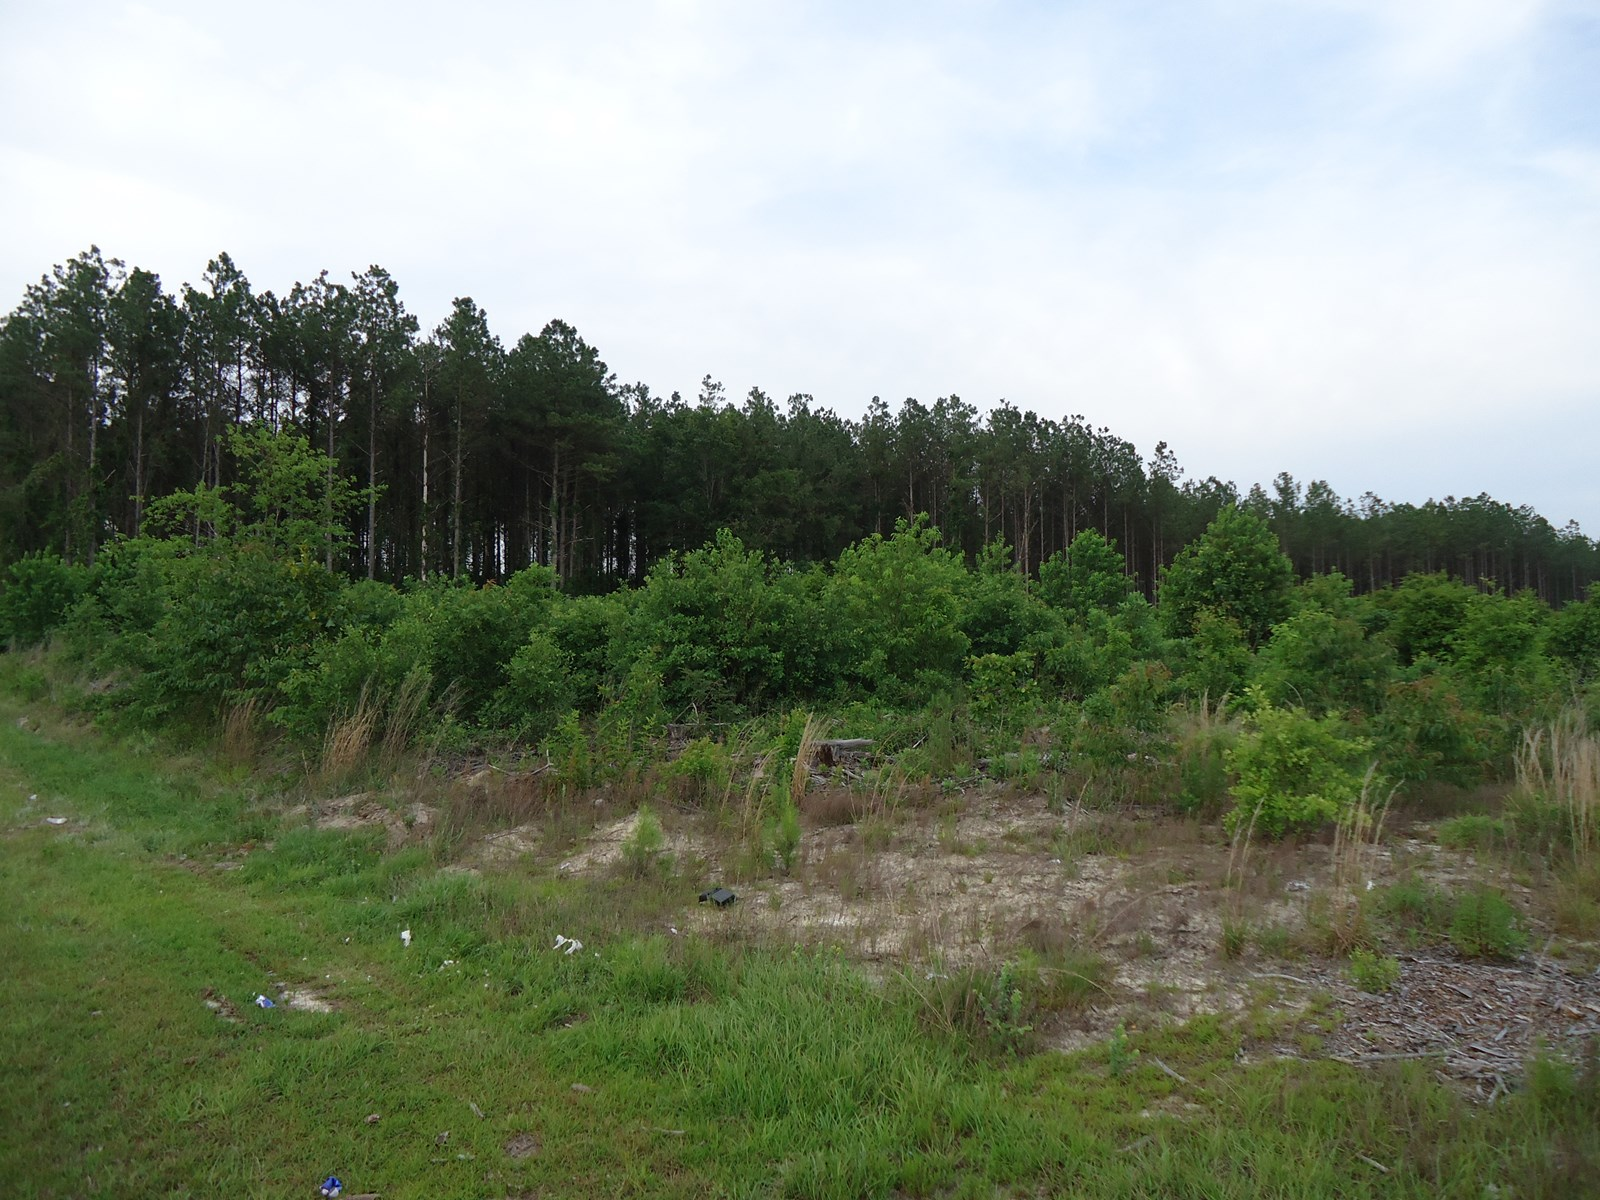 FOR SALE 2 WOODED ACRES IN LUGOFF, SC